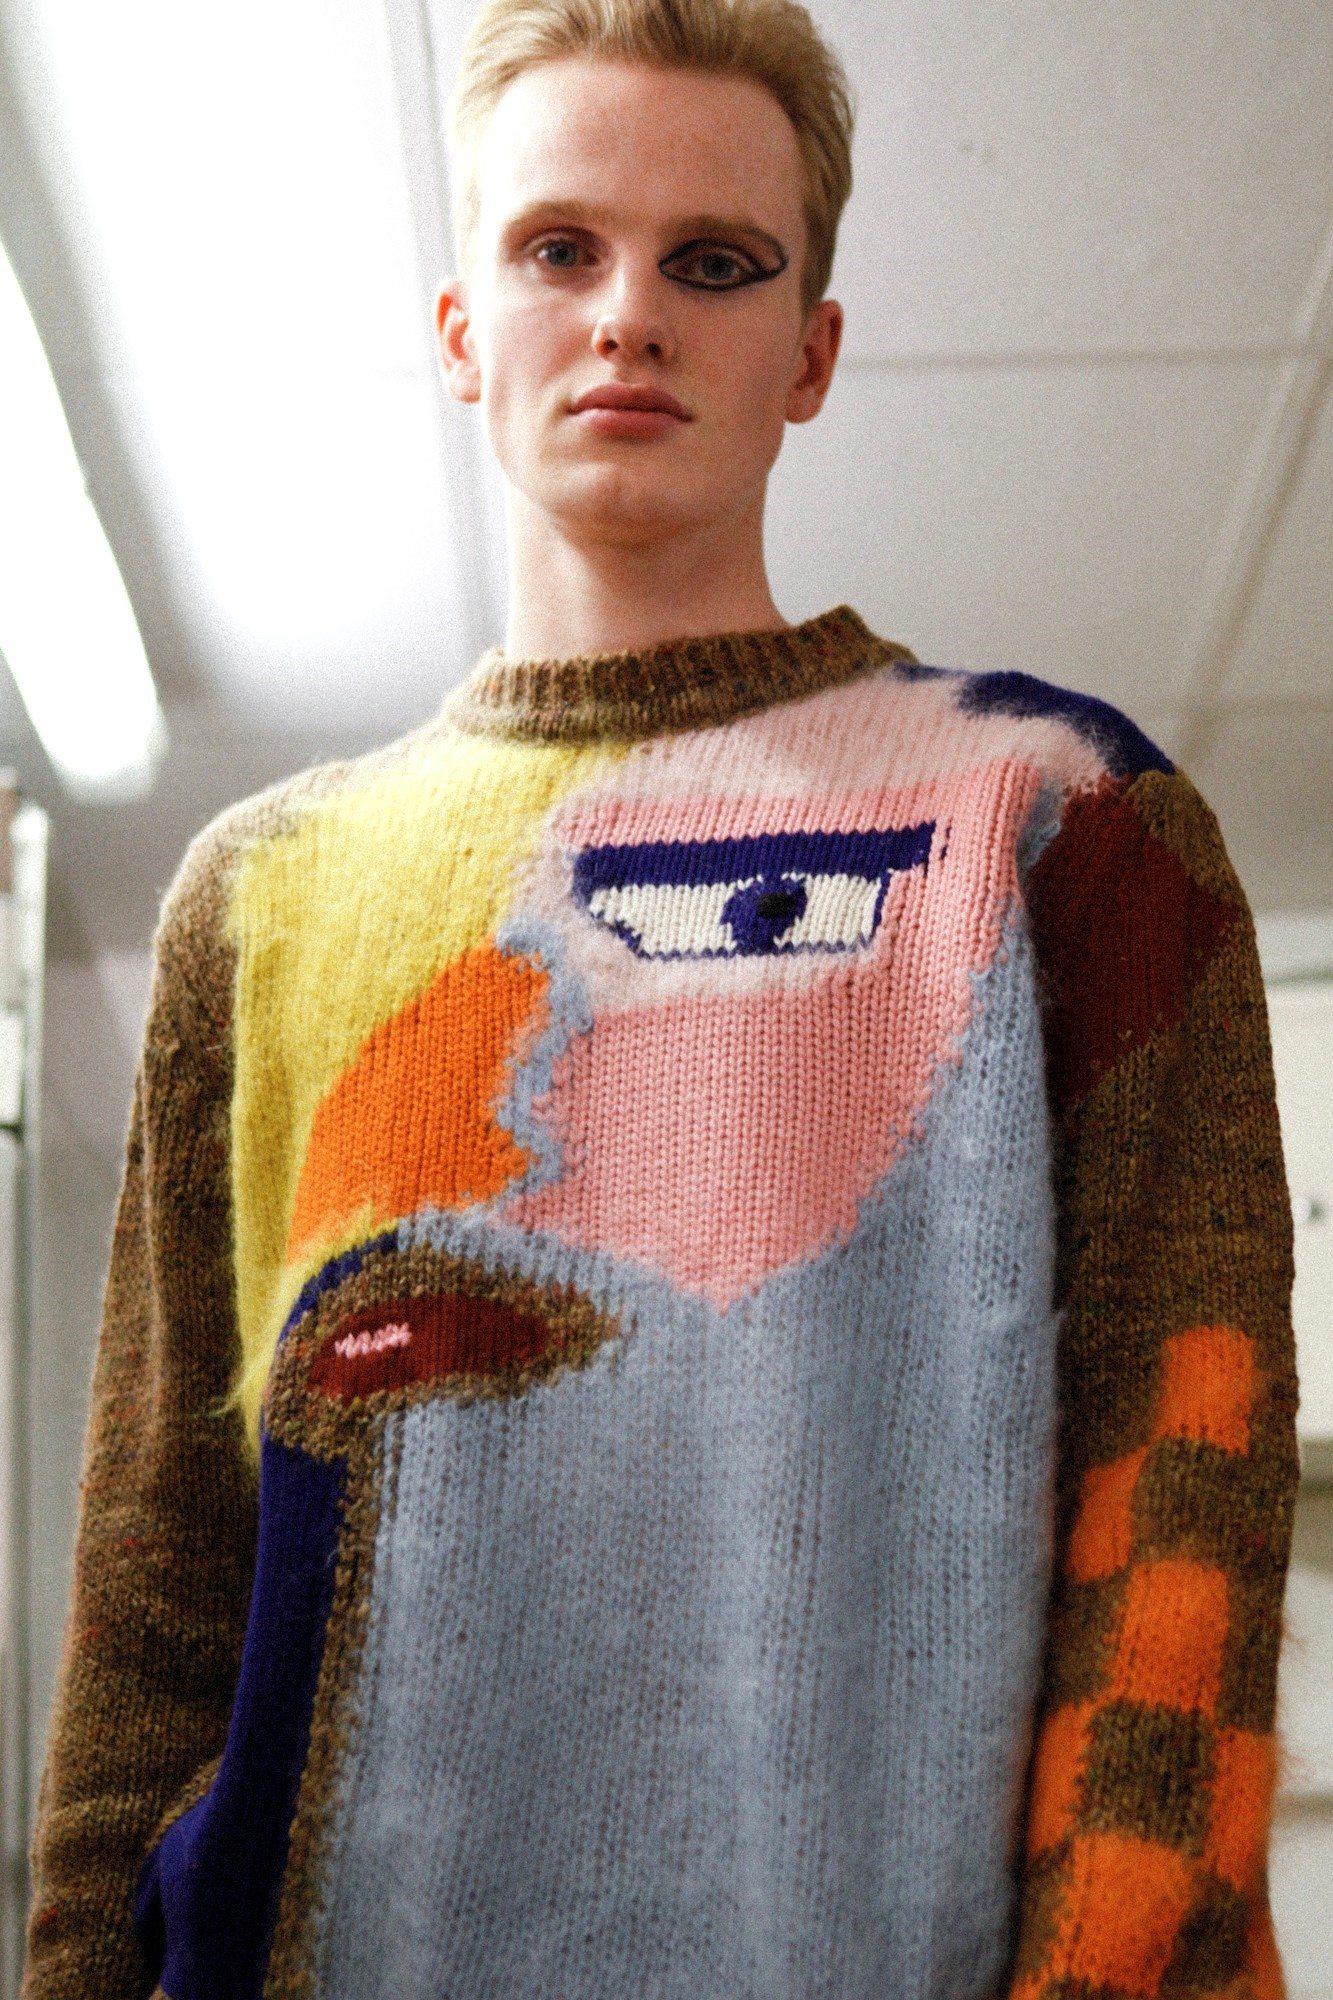 walter van beirendonck aw15 graphic knit jumper eyeliner. Black Bedroom Furniture Sets. Home Design Ideas